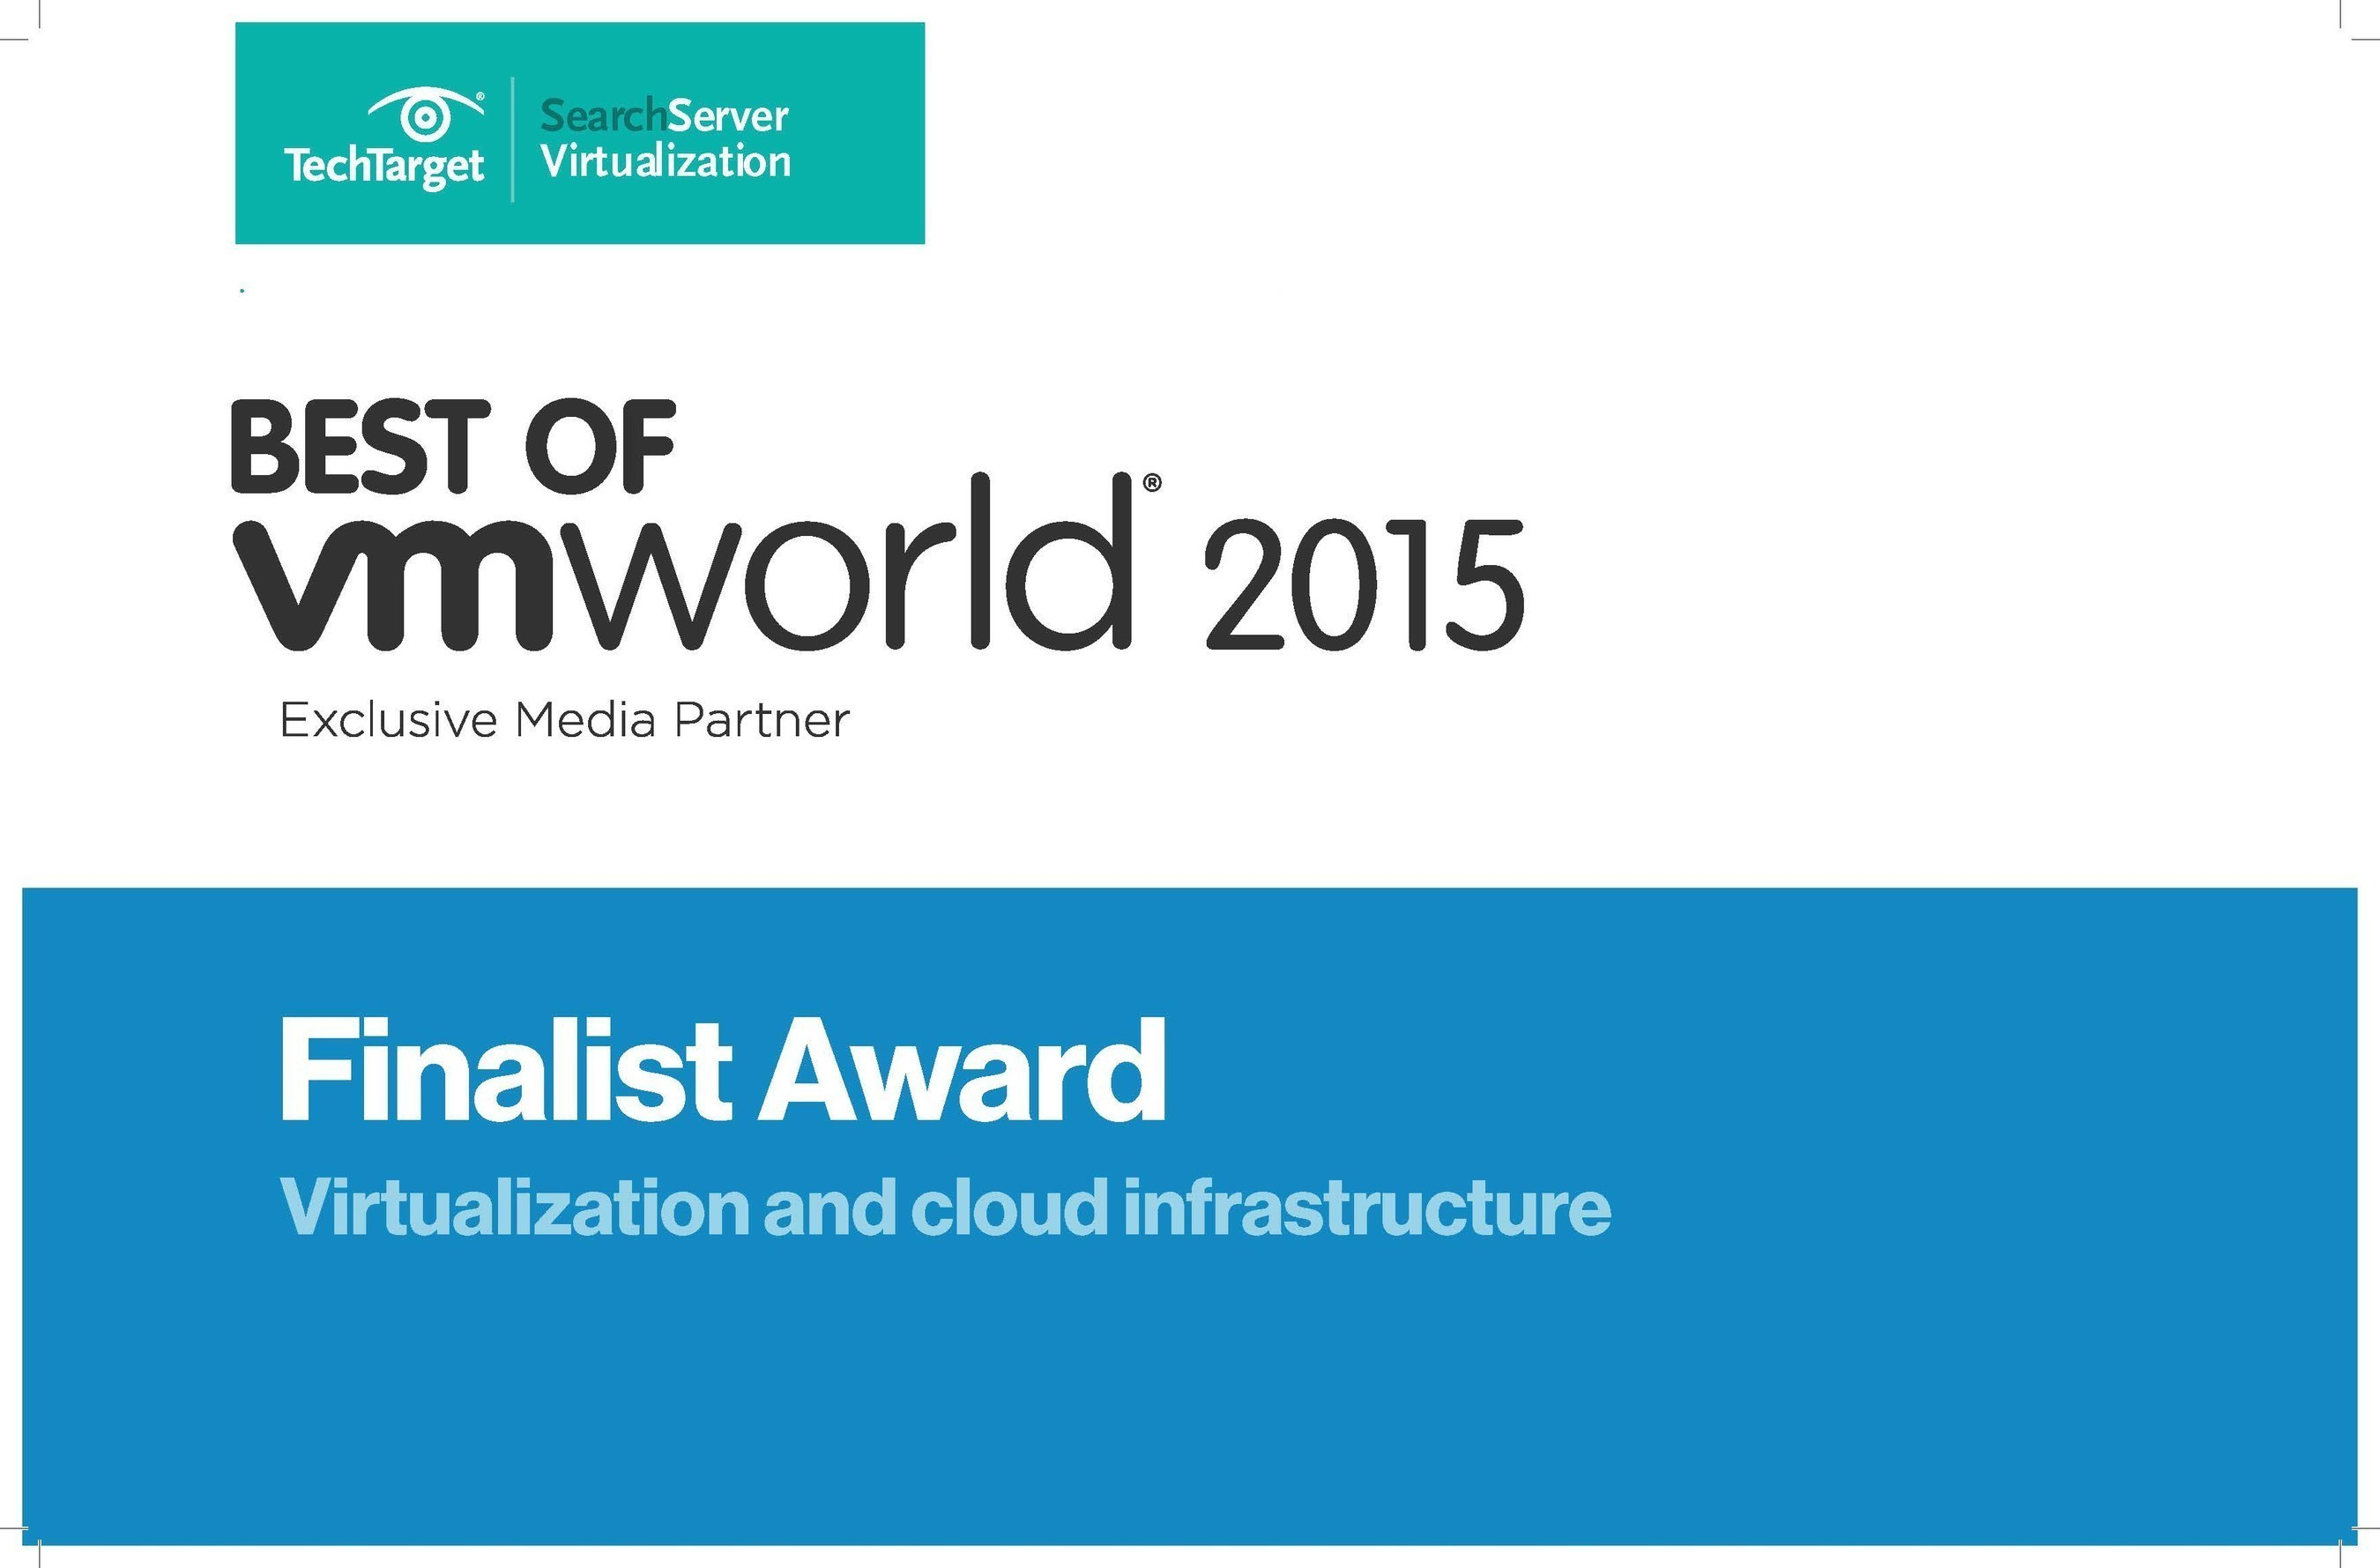 Synology's RC18015xs+ is Named a 'Best of VMworld 2015' Award Finalist